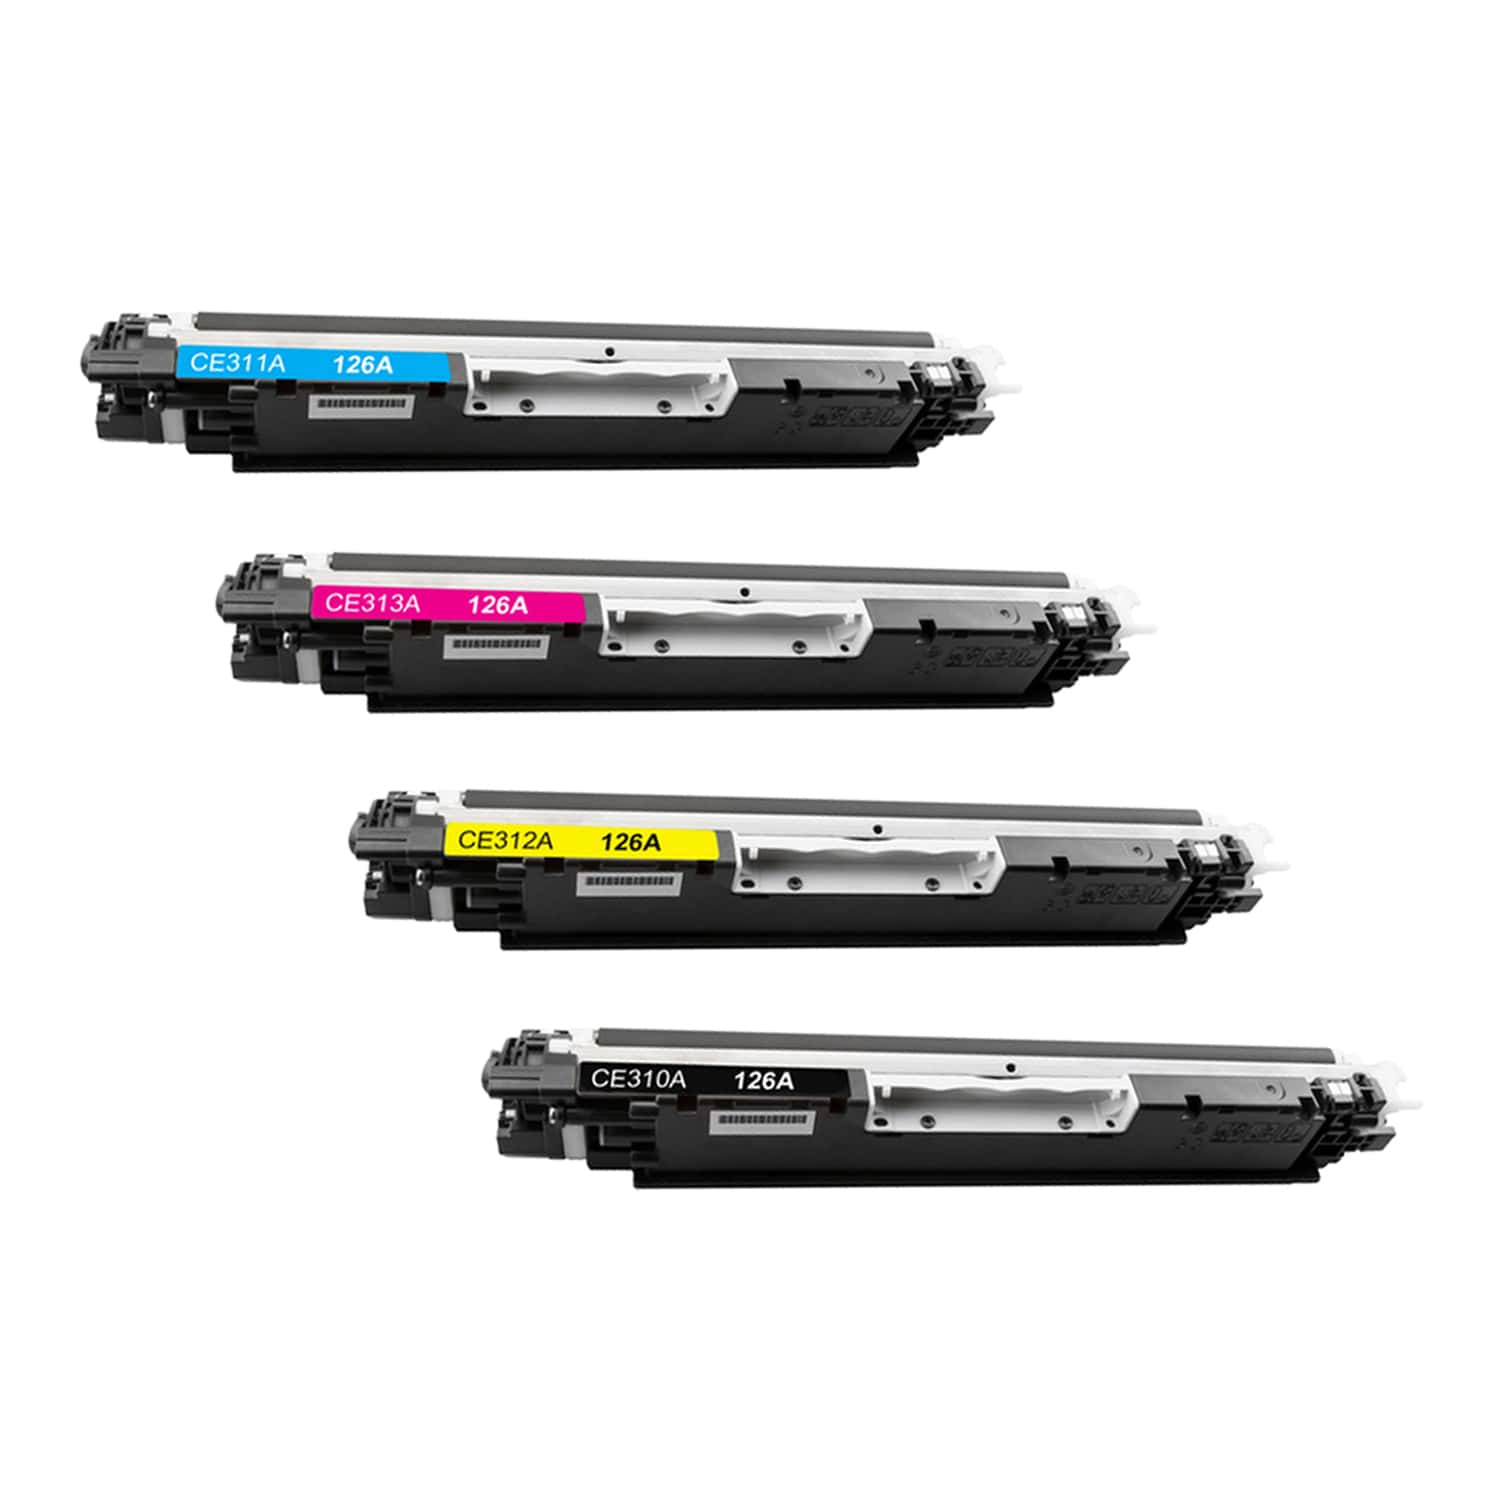 3 PK 126A Cyan Toner Cartridge For HP CE311A LaserJet TopShot Pro M275nw Printer